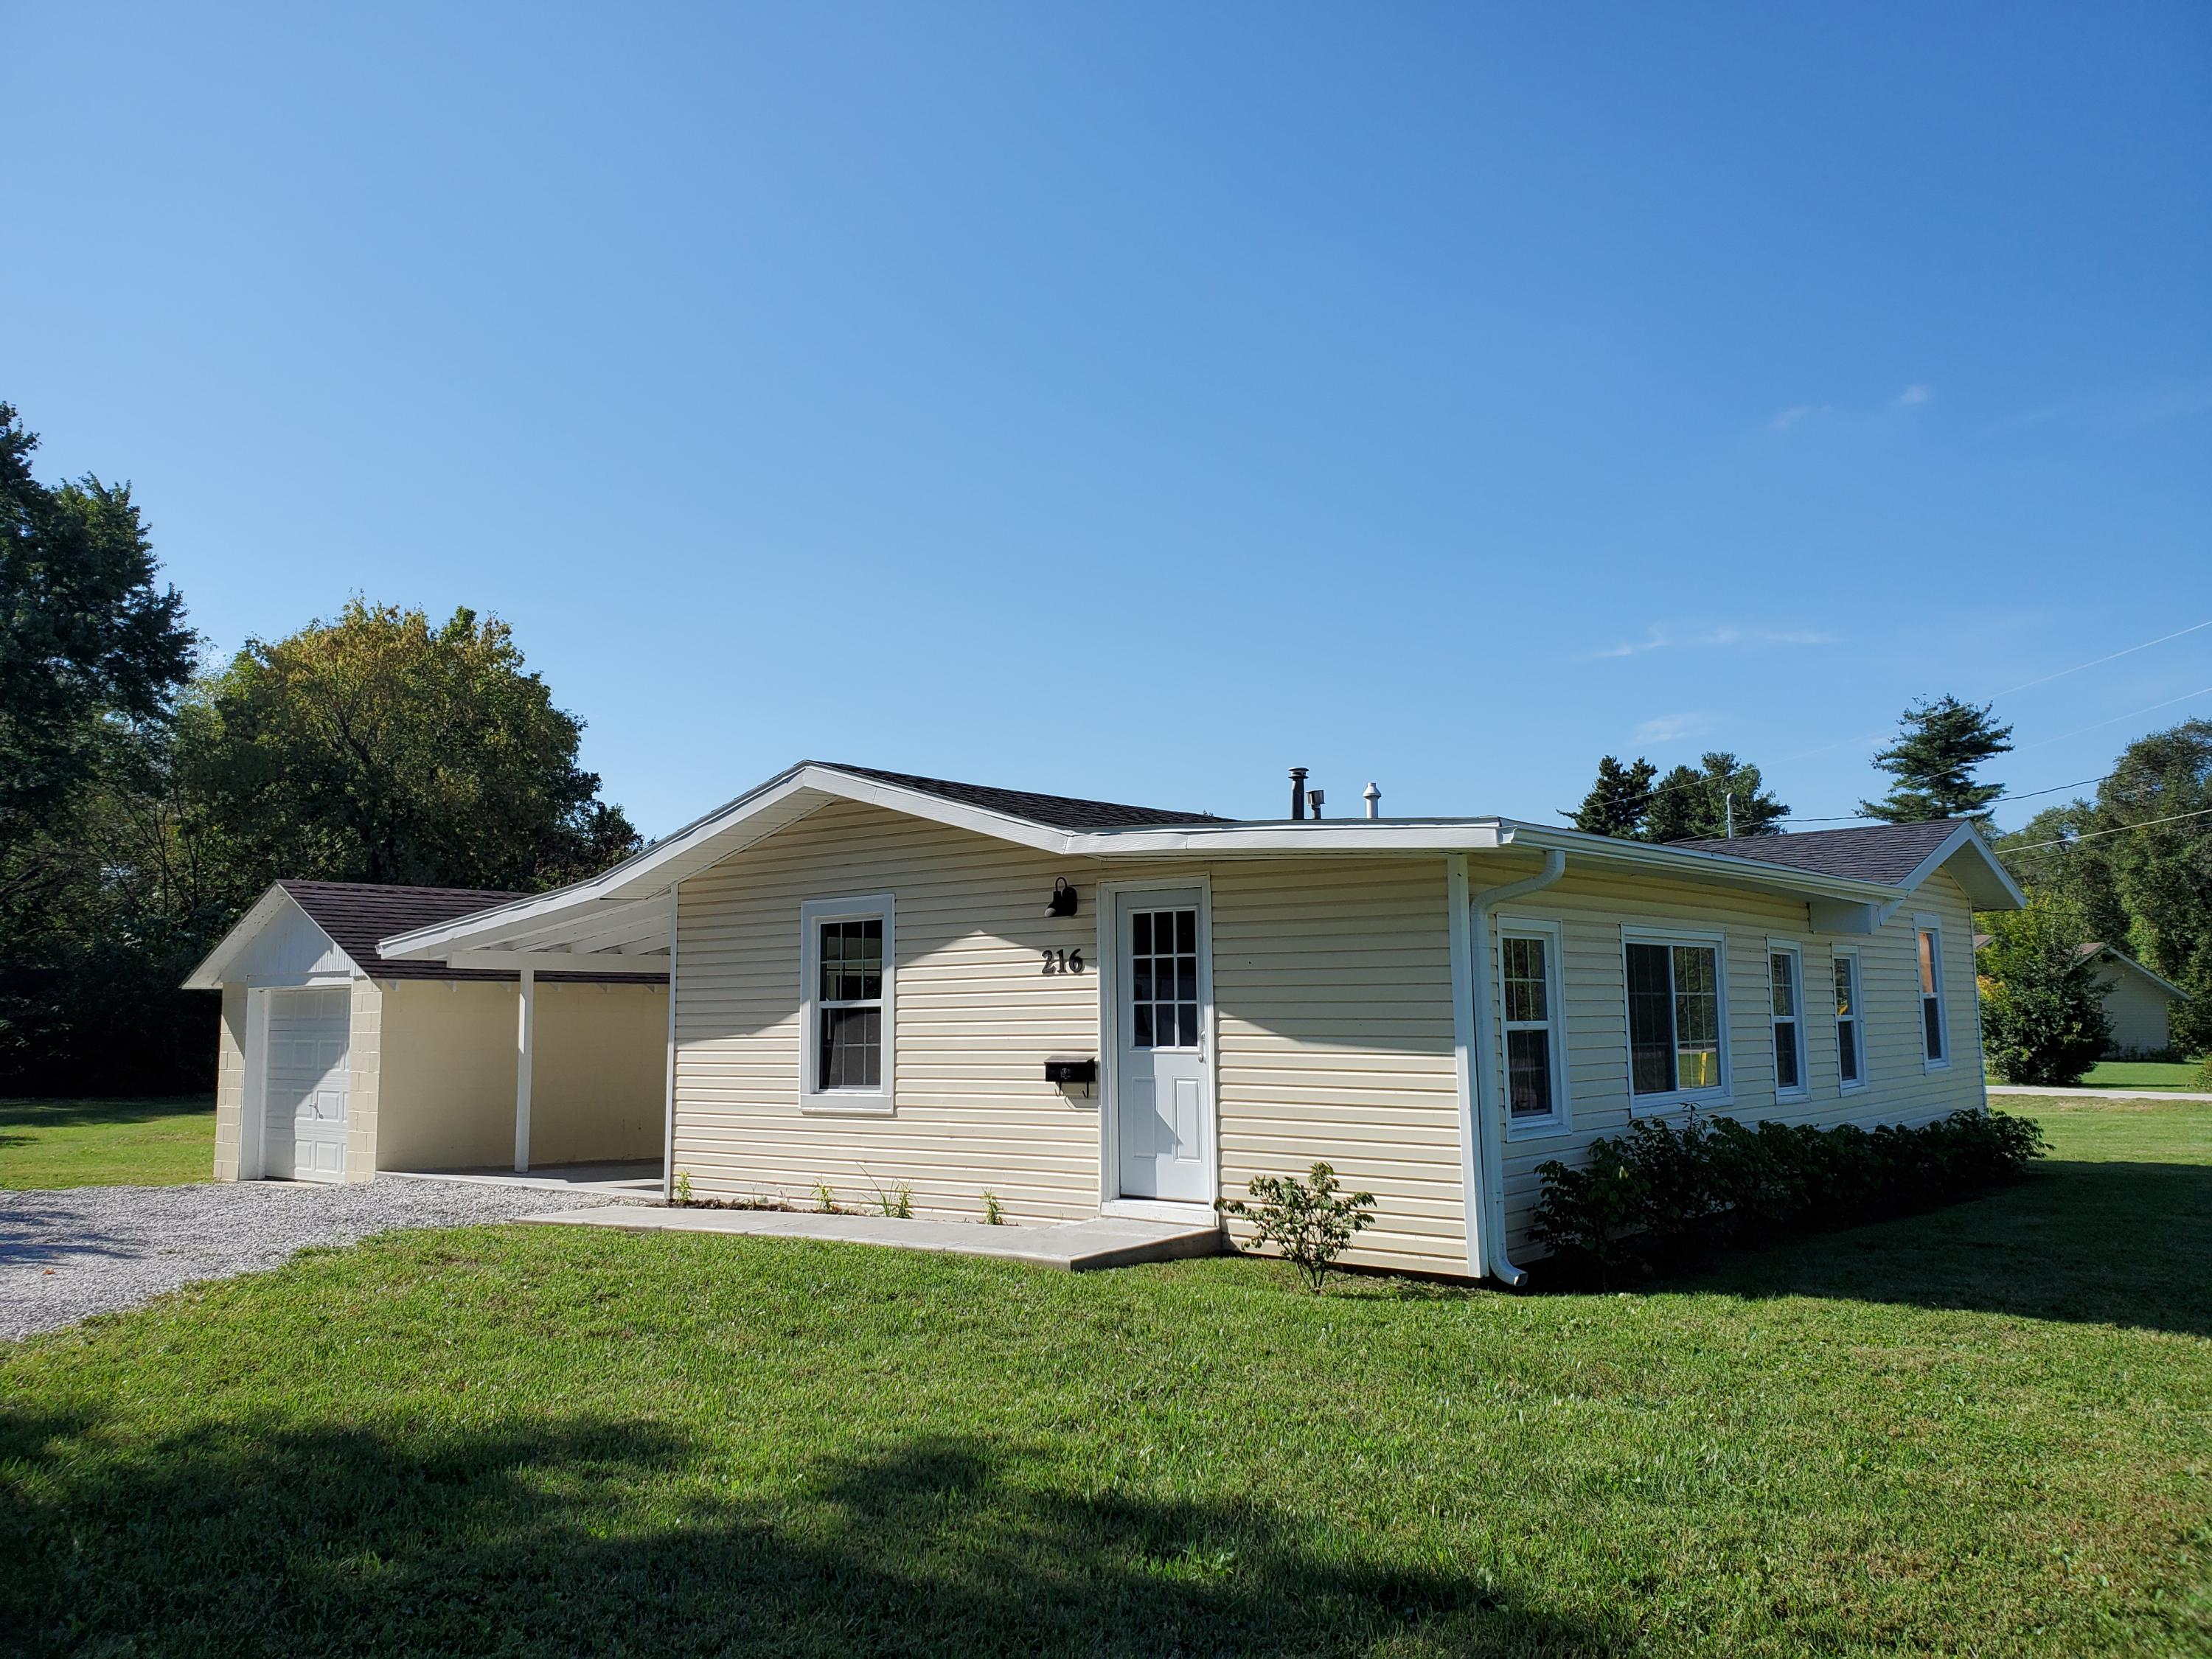 216 West State Highway Republic, MO 65738